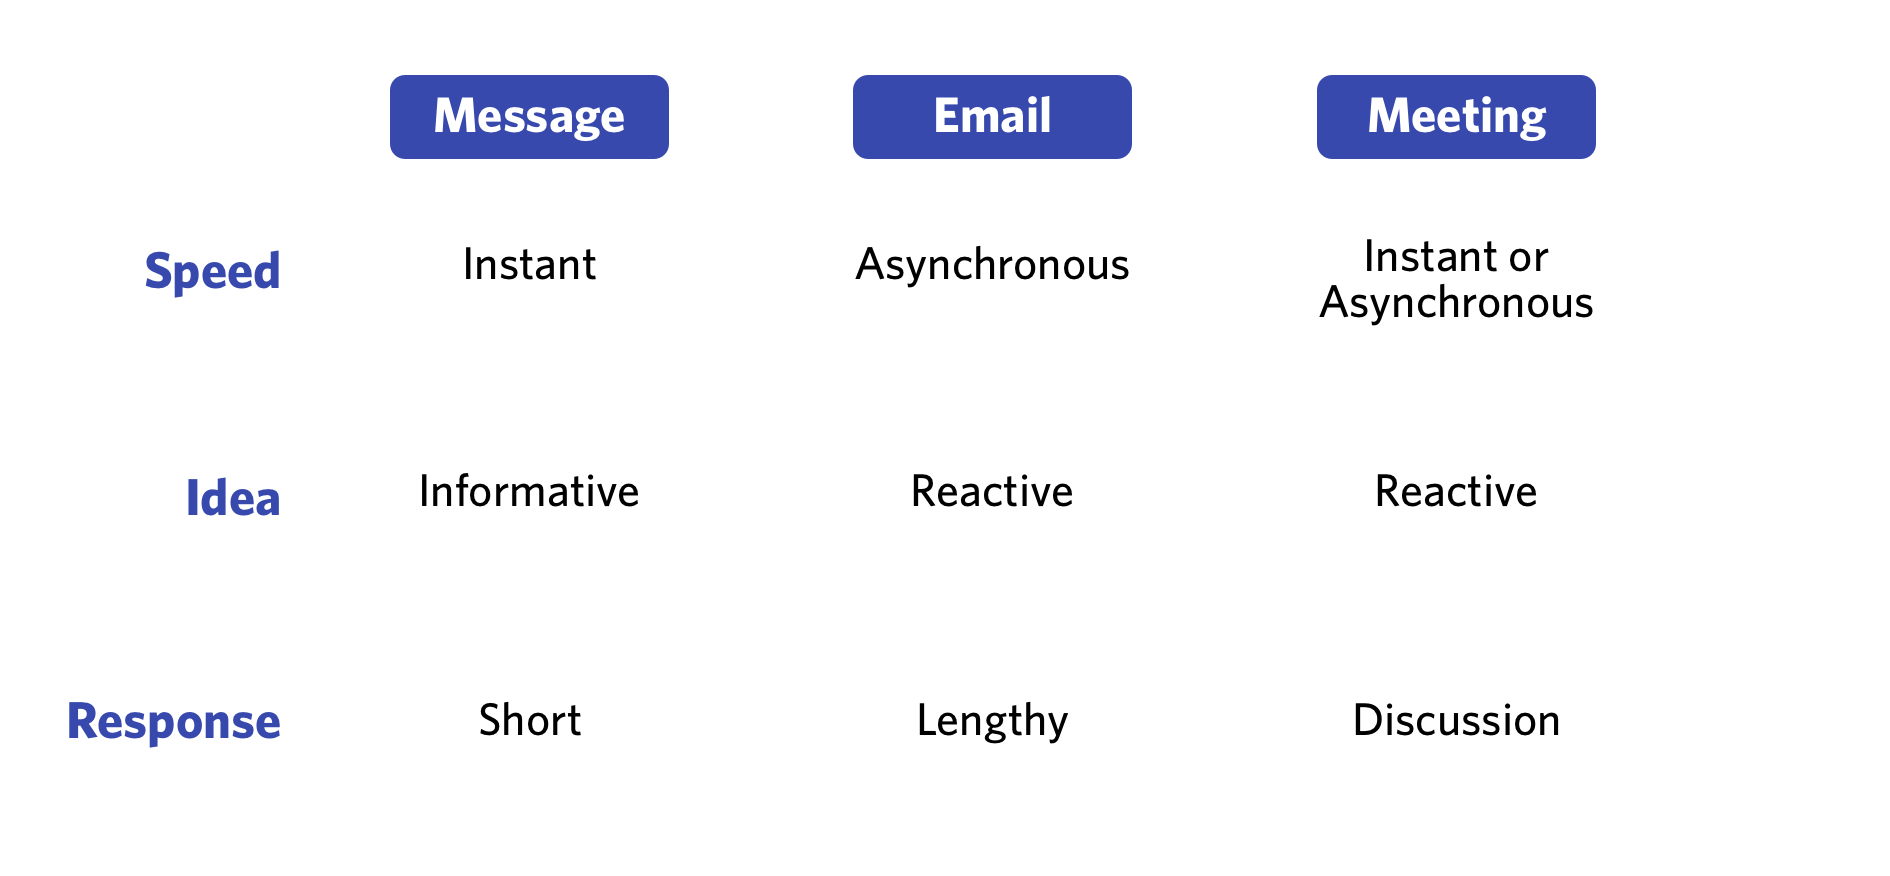 A 3x3 table for deciding which messaging channel to use.